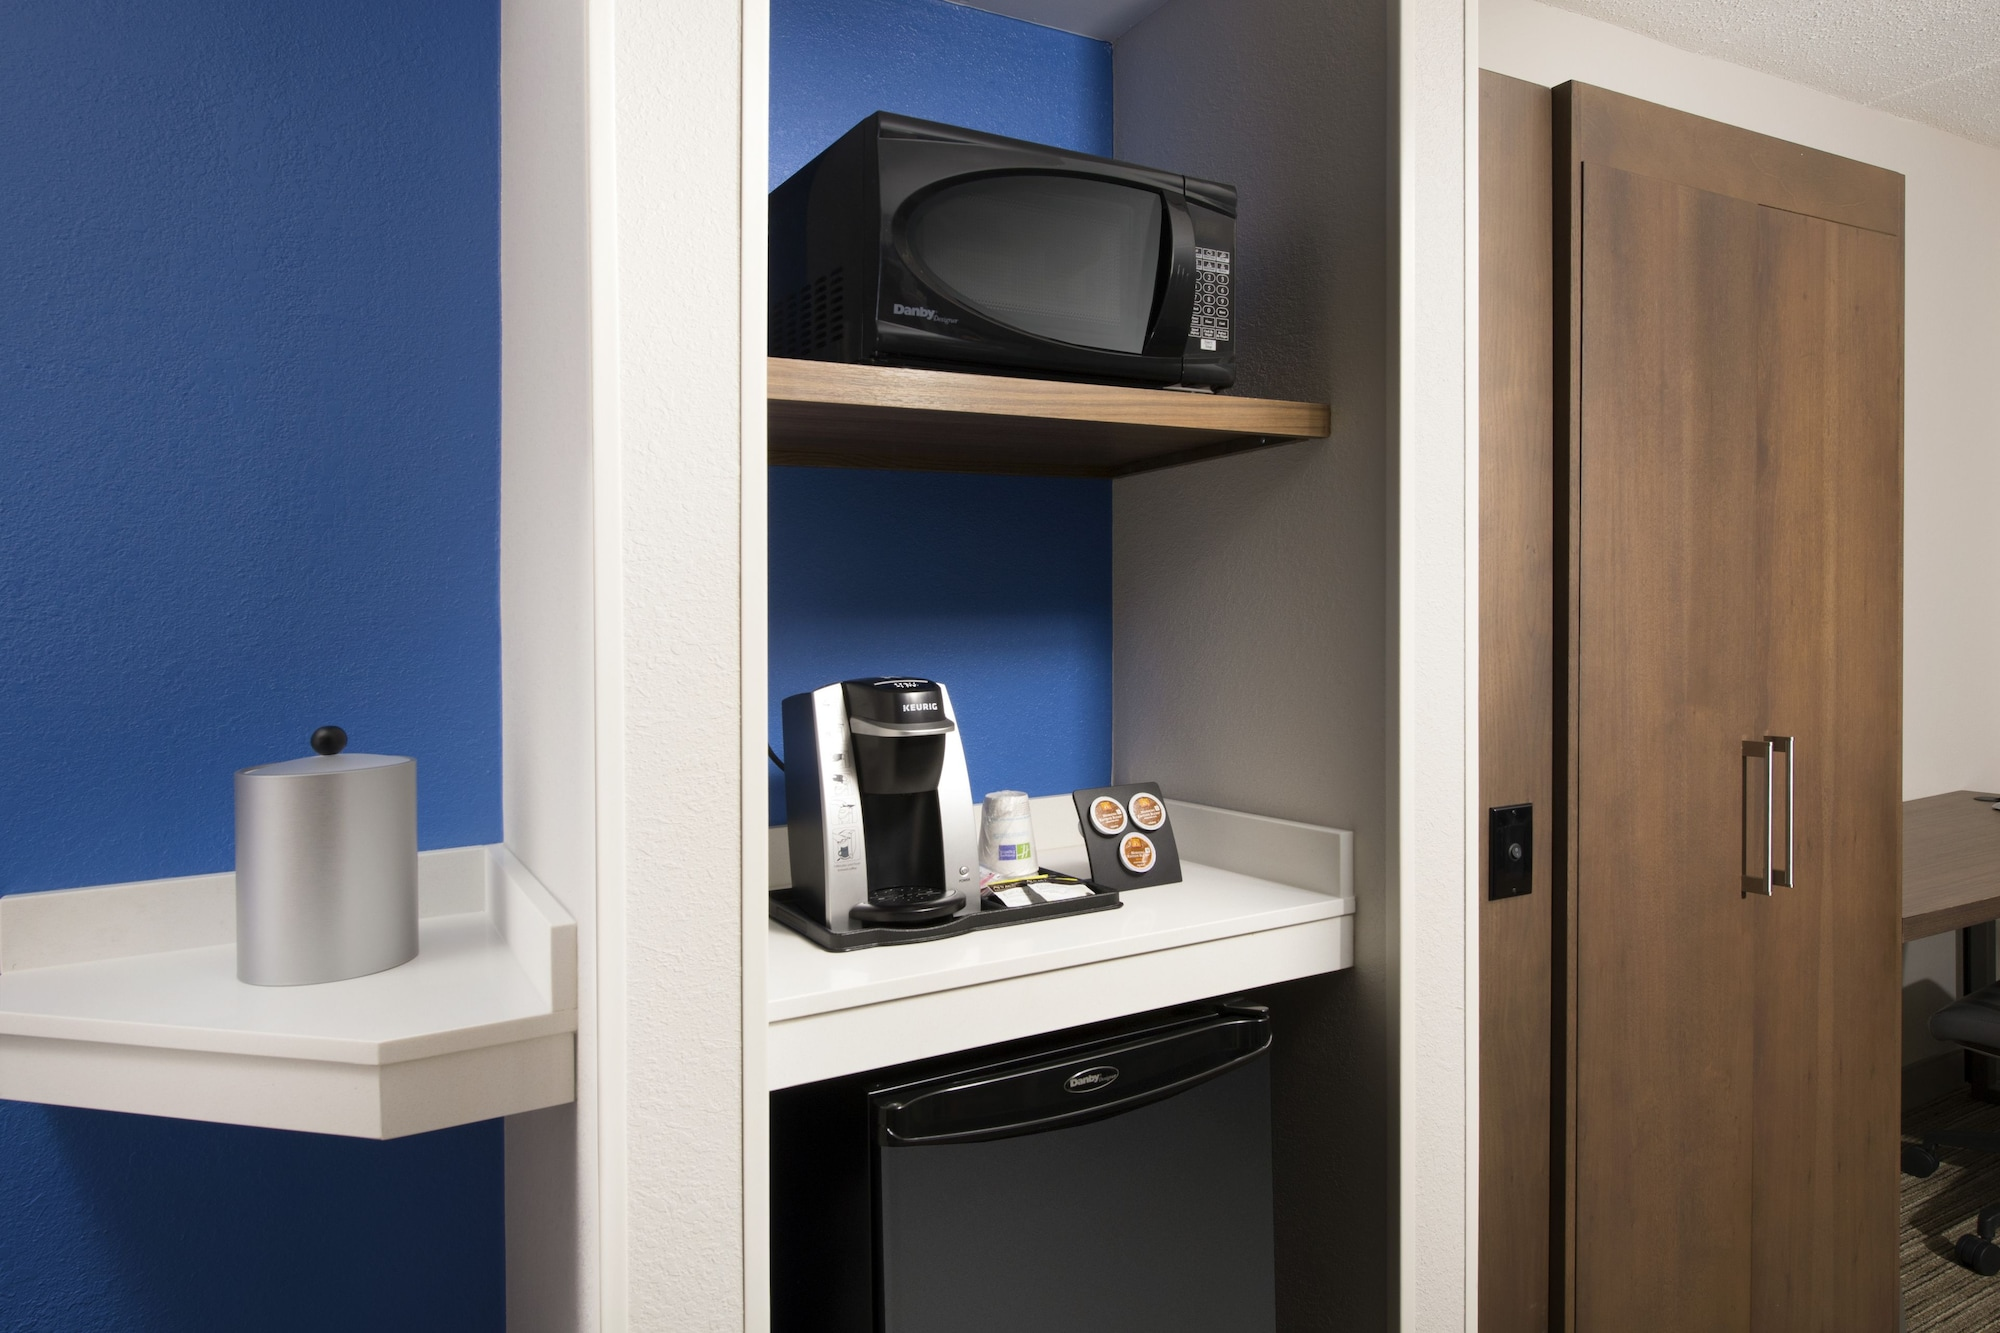 Holiday Inn Express & Suites Baltimore - BWI Airport North, Anne Arundel